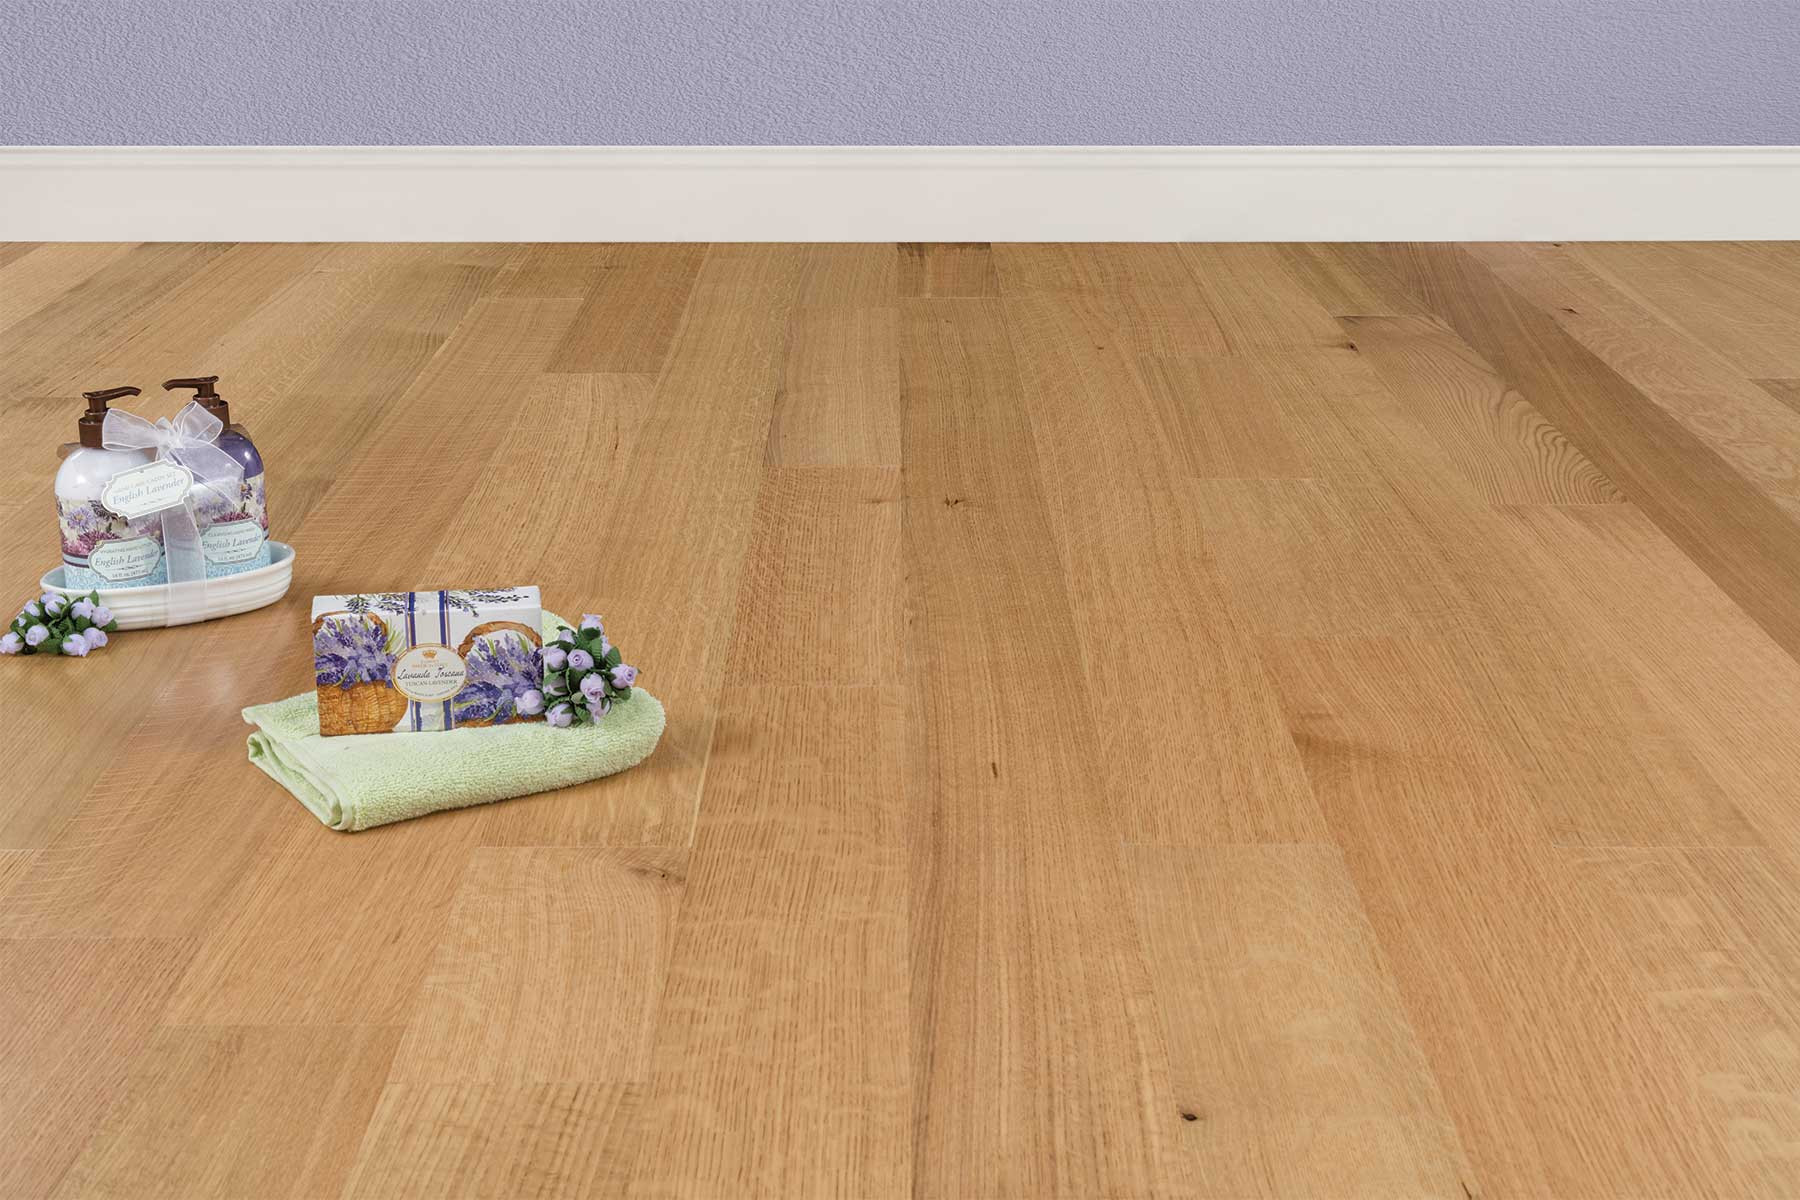 5 Inch White Oak Hardwood Flooring Of Wood Flooring Collections for American White Oak